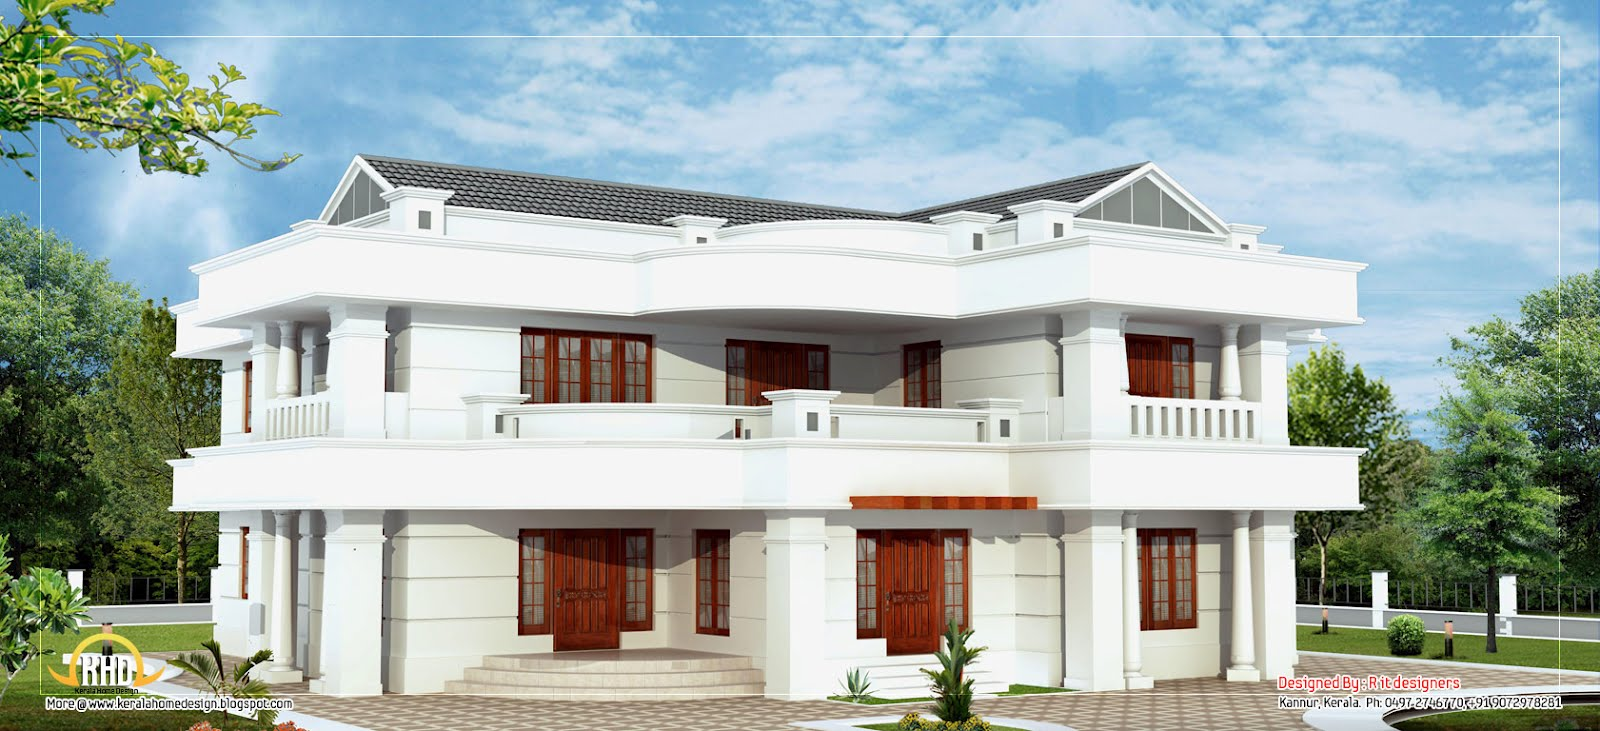 2 storey luxury house